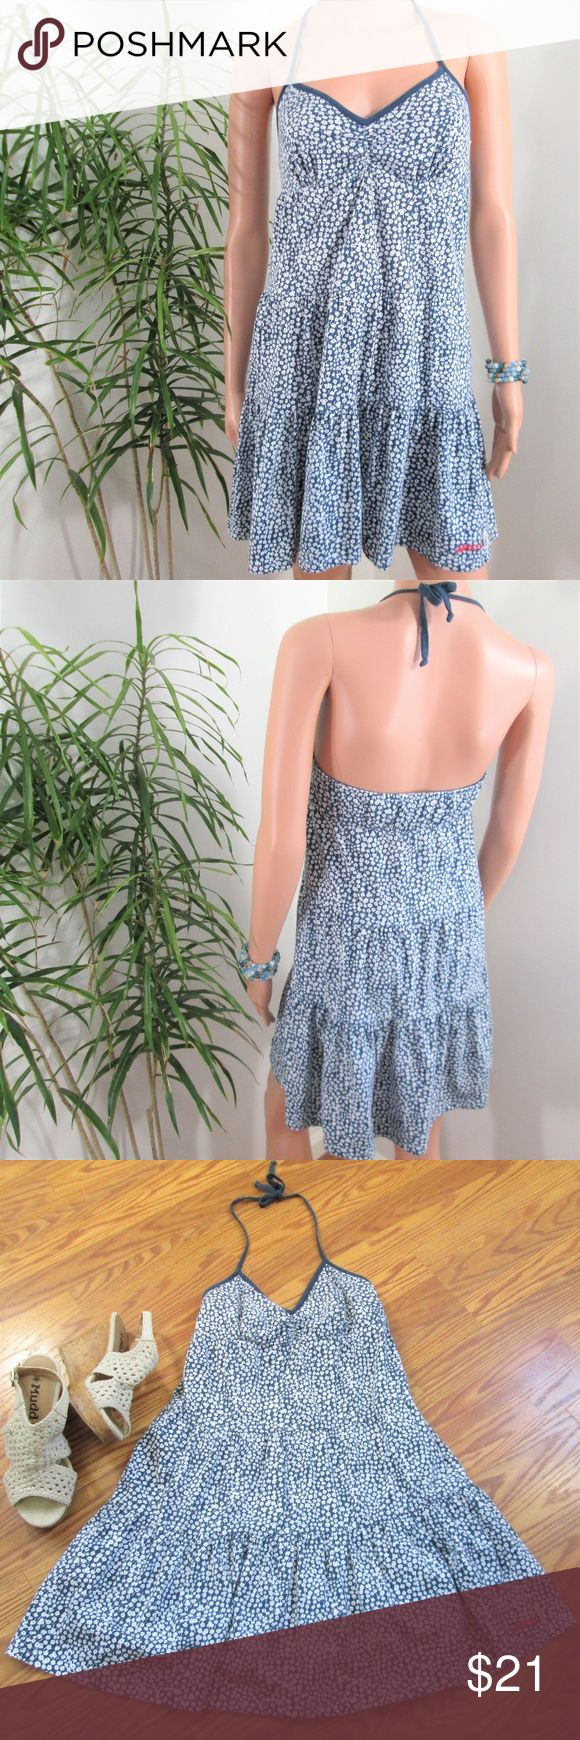 """Billabong*  Open Back Baby Doll Mini Dress Sweet no fuss floral popover. Ties at neck, tiered skirt. Empire waist, shelf bra. Blue with white tiny daisy print.  Measured flat - not stretched. 14"""" pit to pit. 28"""" long without straps. Mid thigh on 5"""" 9' model, 33'' x 24'' x 33.5''.  55% cotton 45% modal Billabong Dresses Mini"""